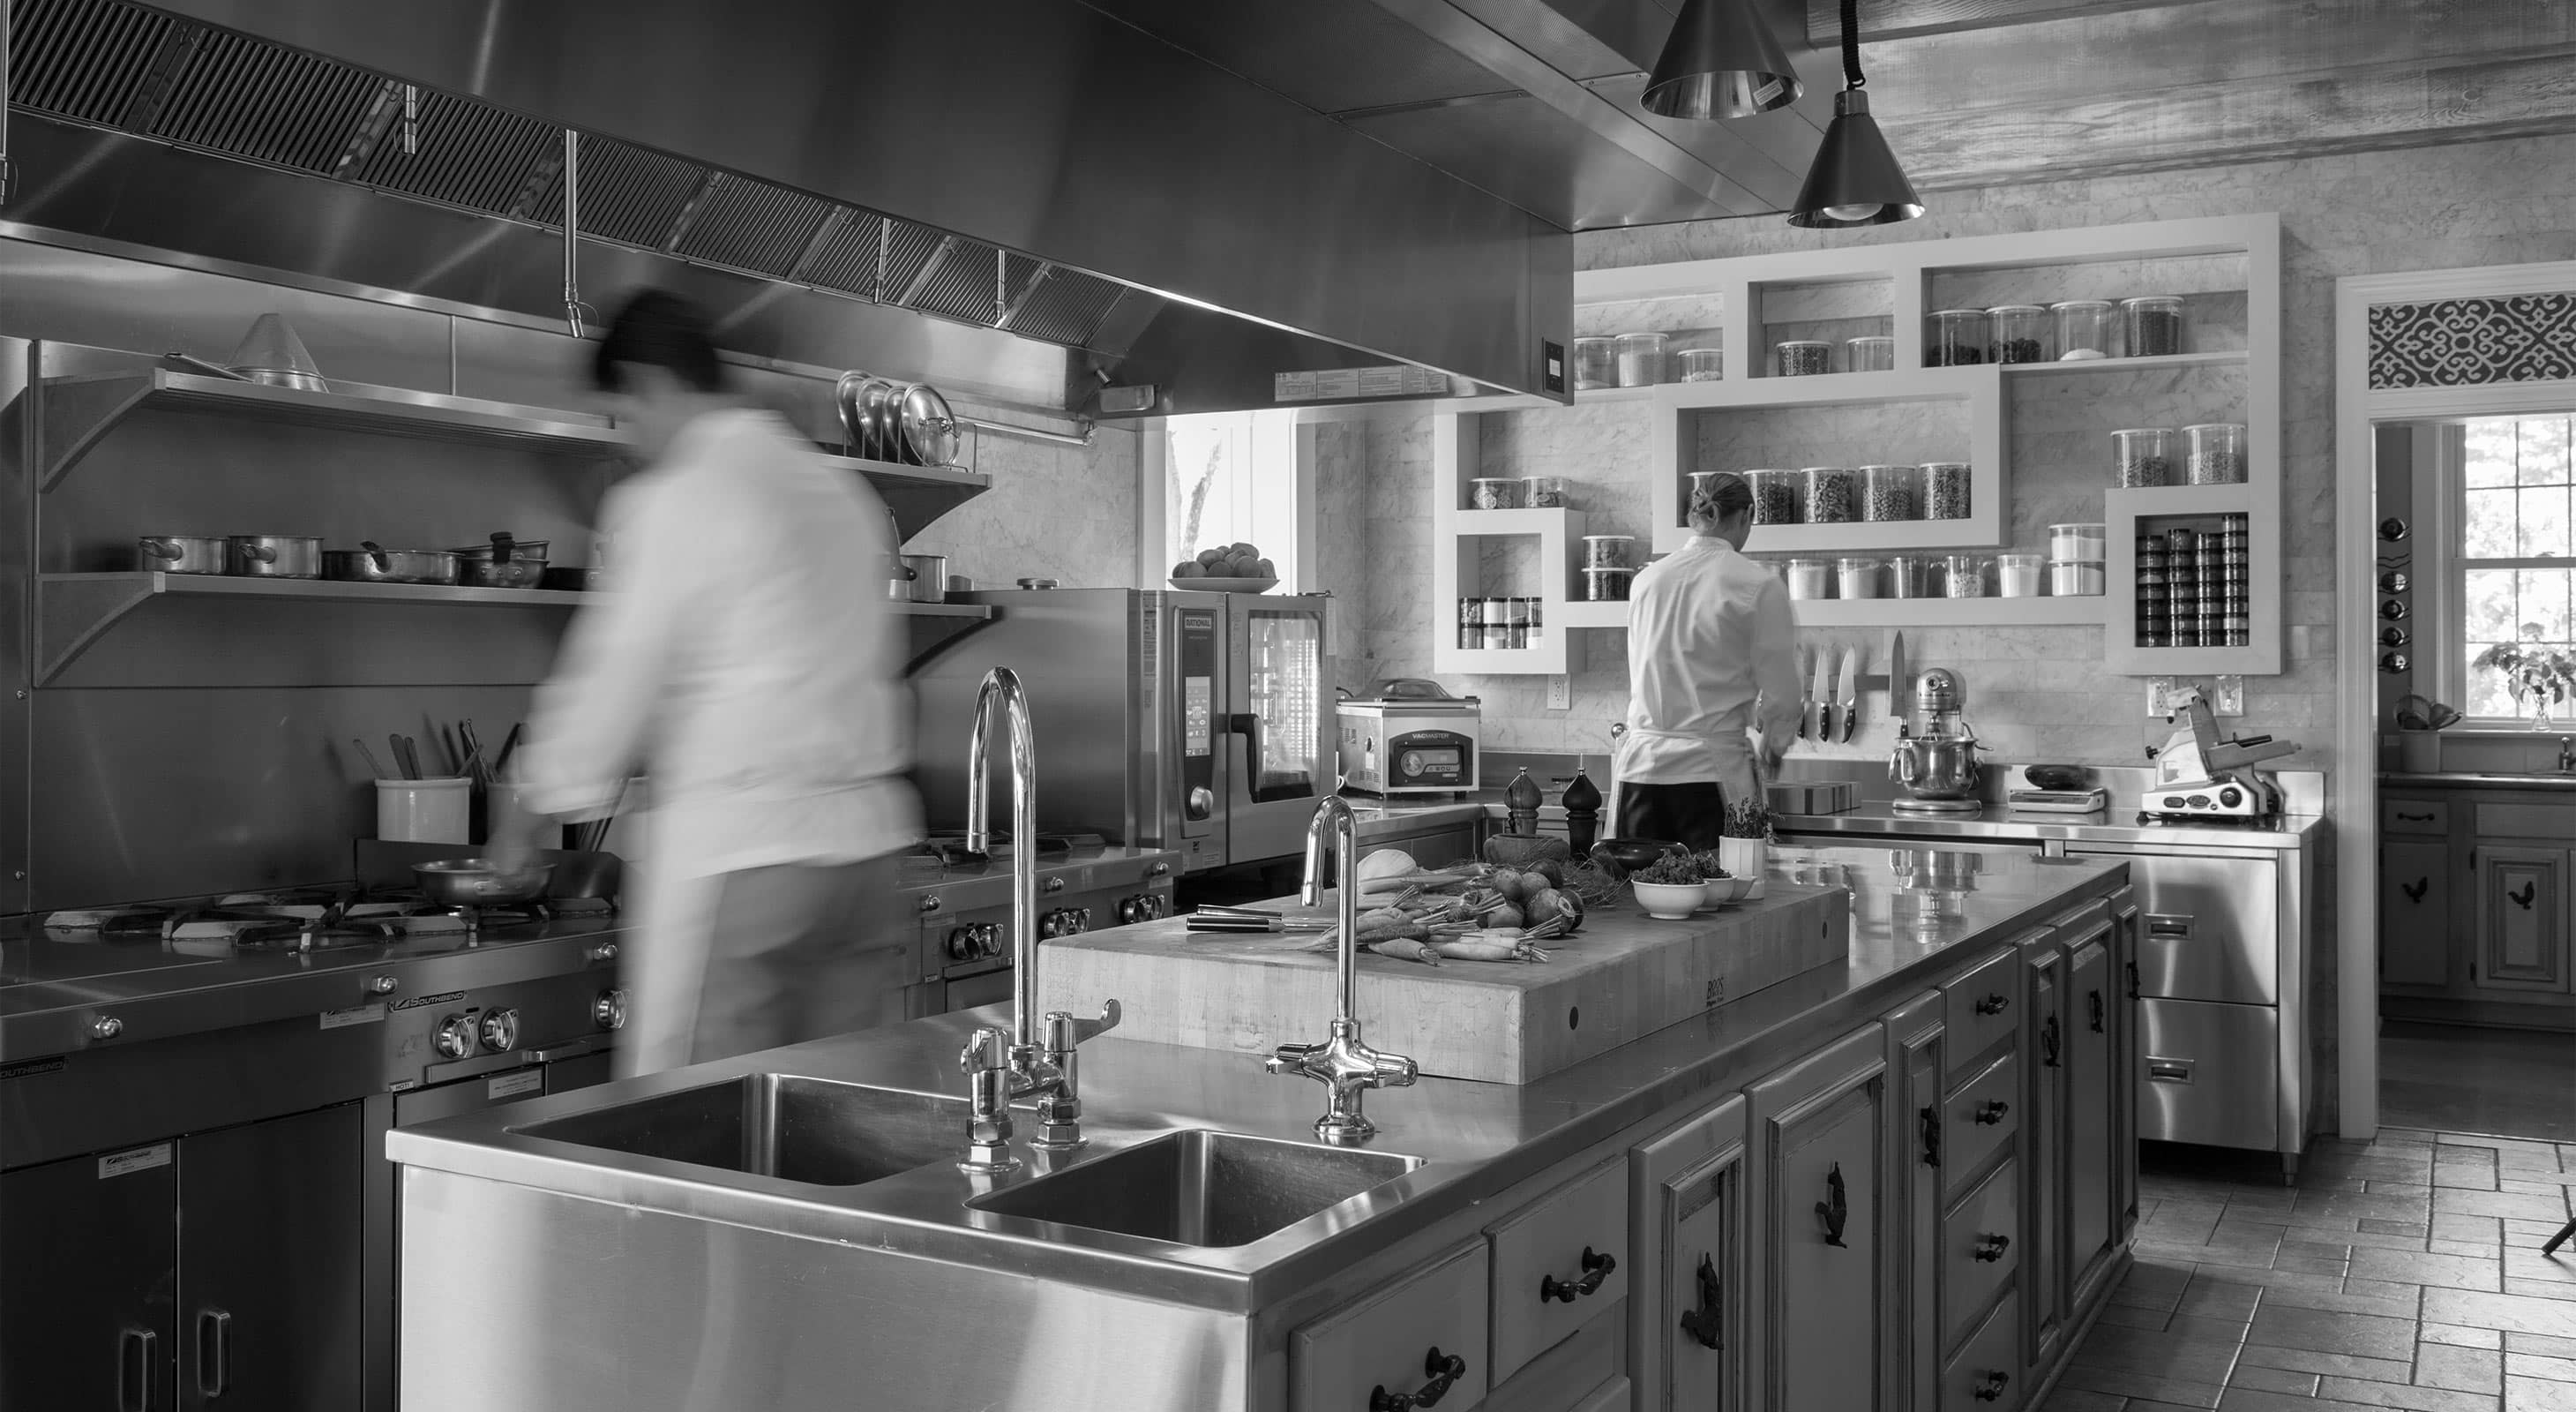 Chefs in Kitchen with veggies on kitchen island